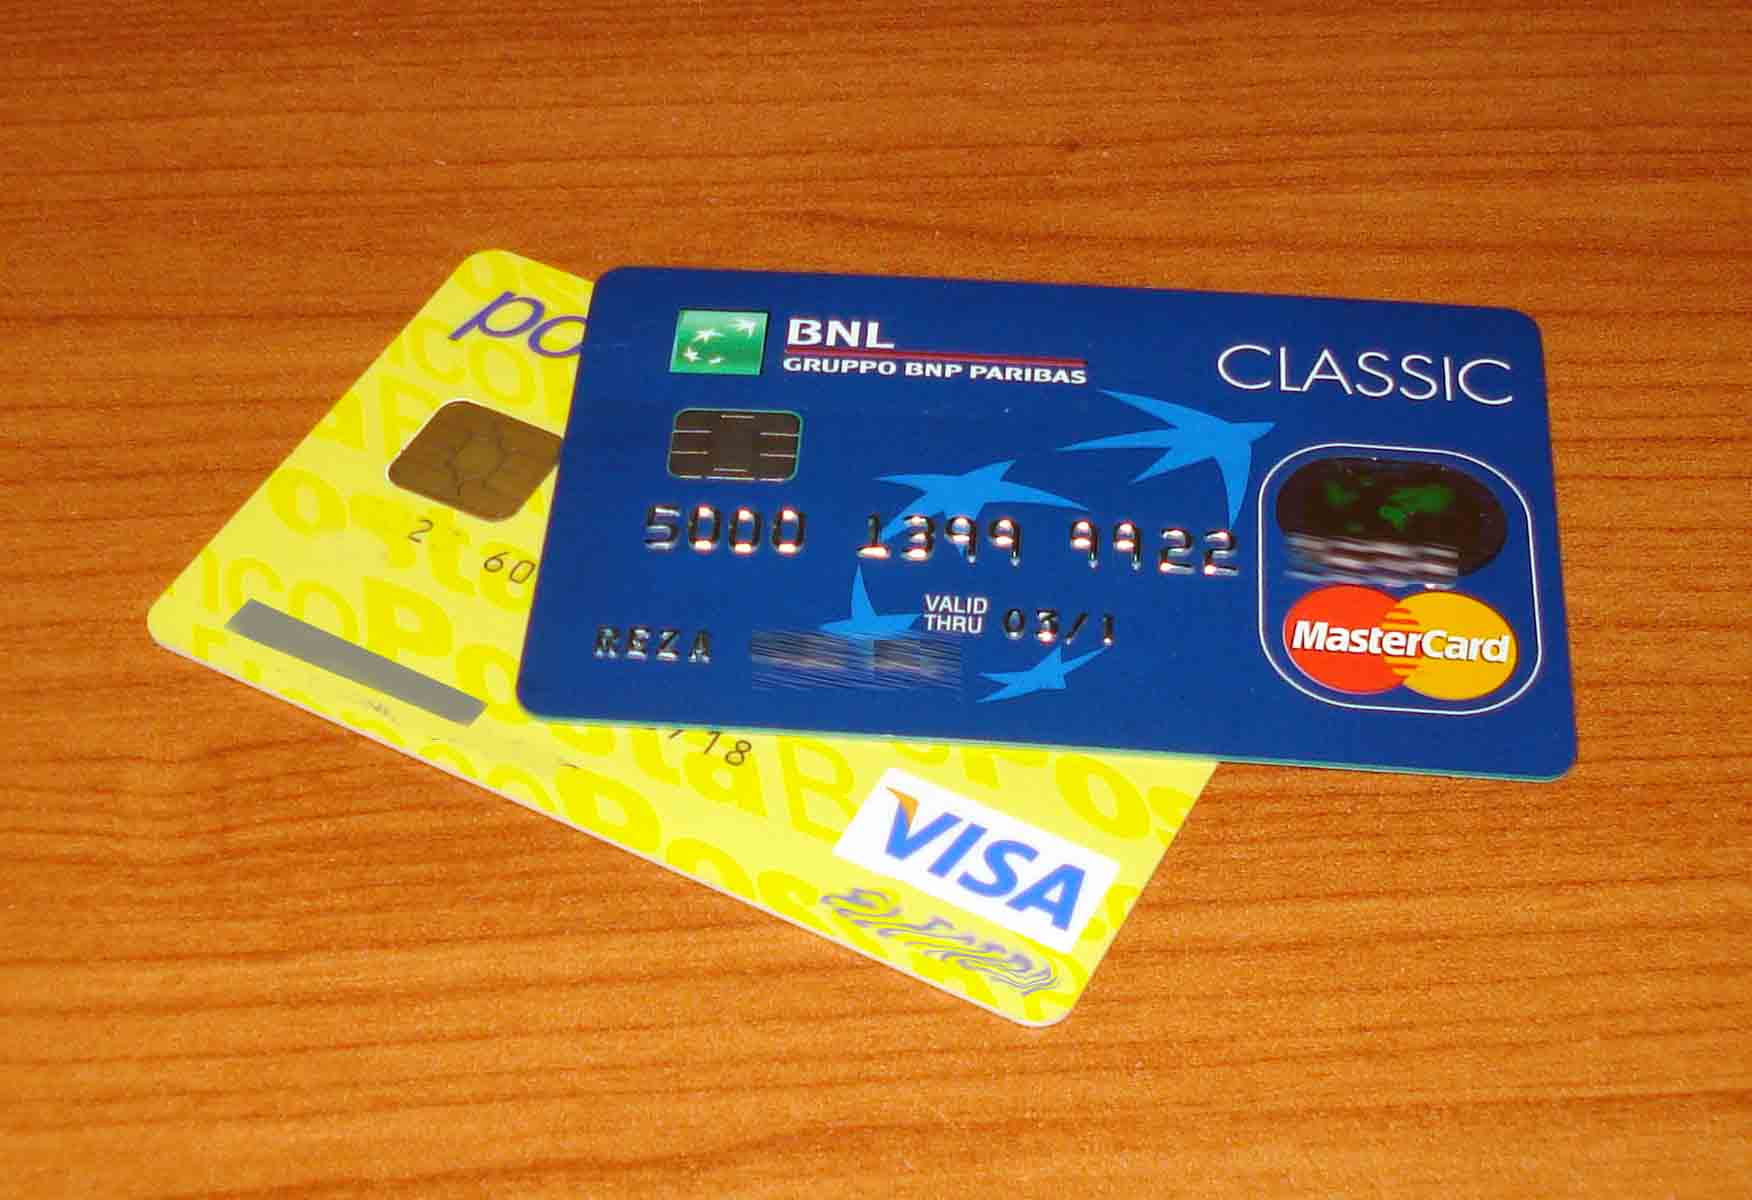 Free Credit Cards With Money